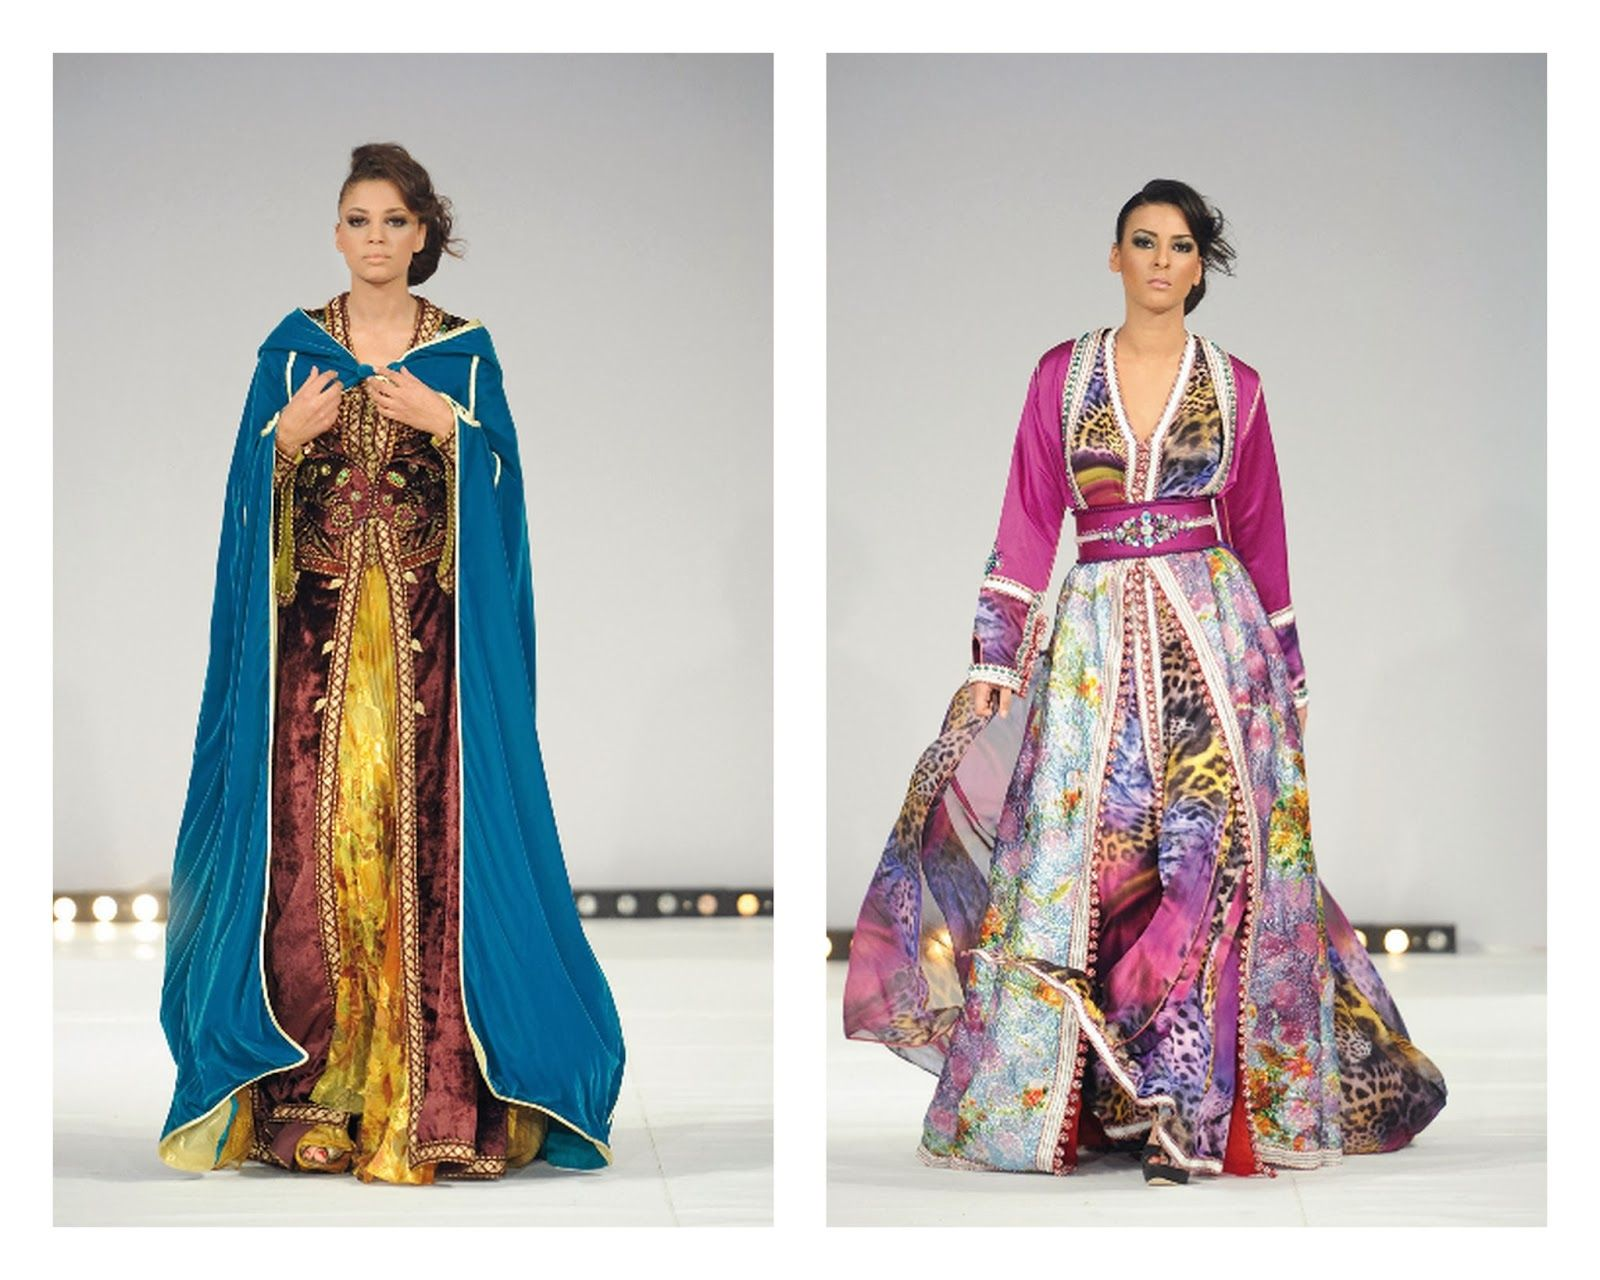 ancient middle eastern clothing - HD 1600×1280